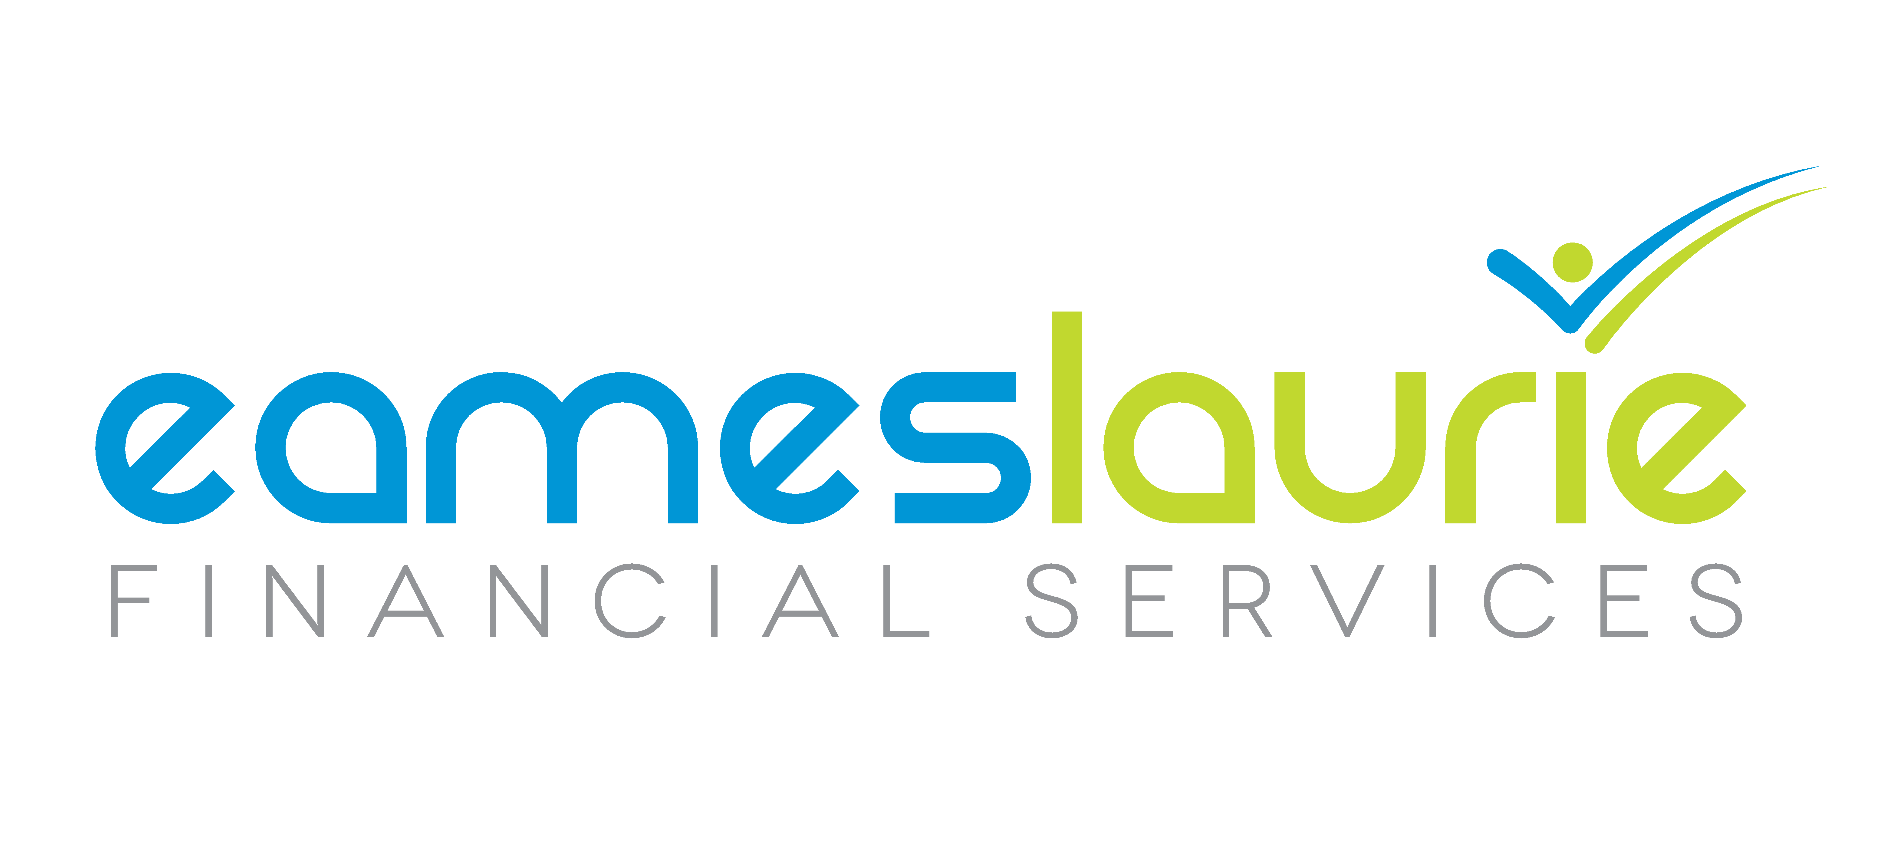 Eames Laurie Financial Services Logo